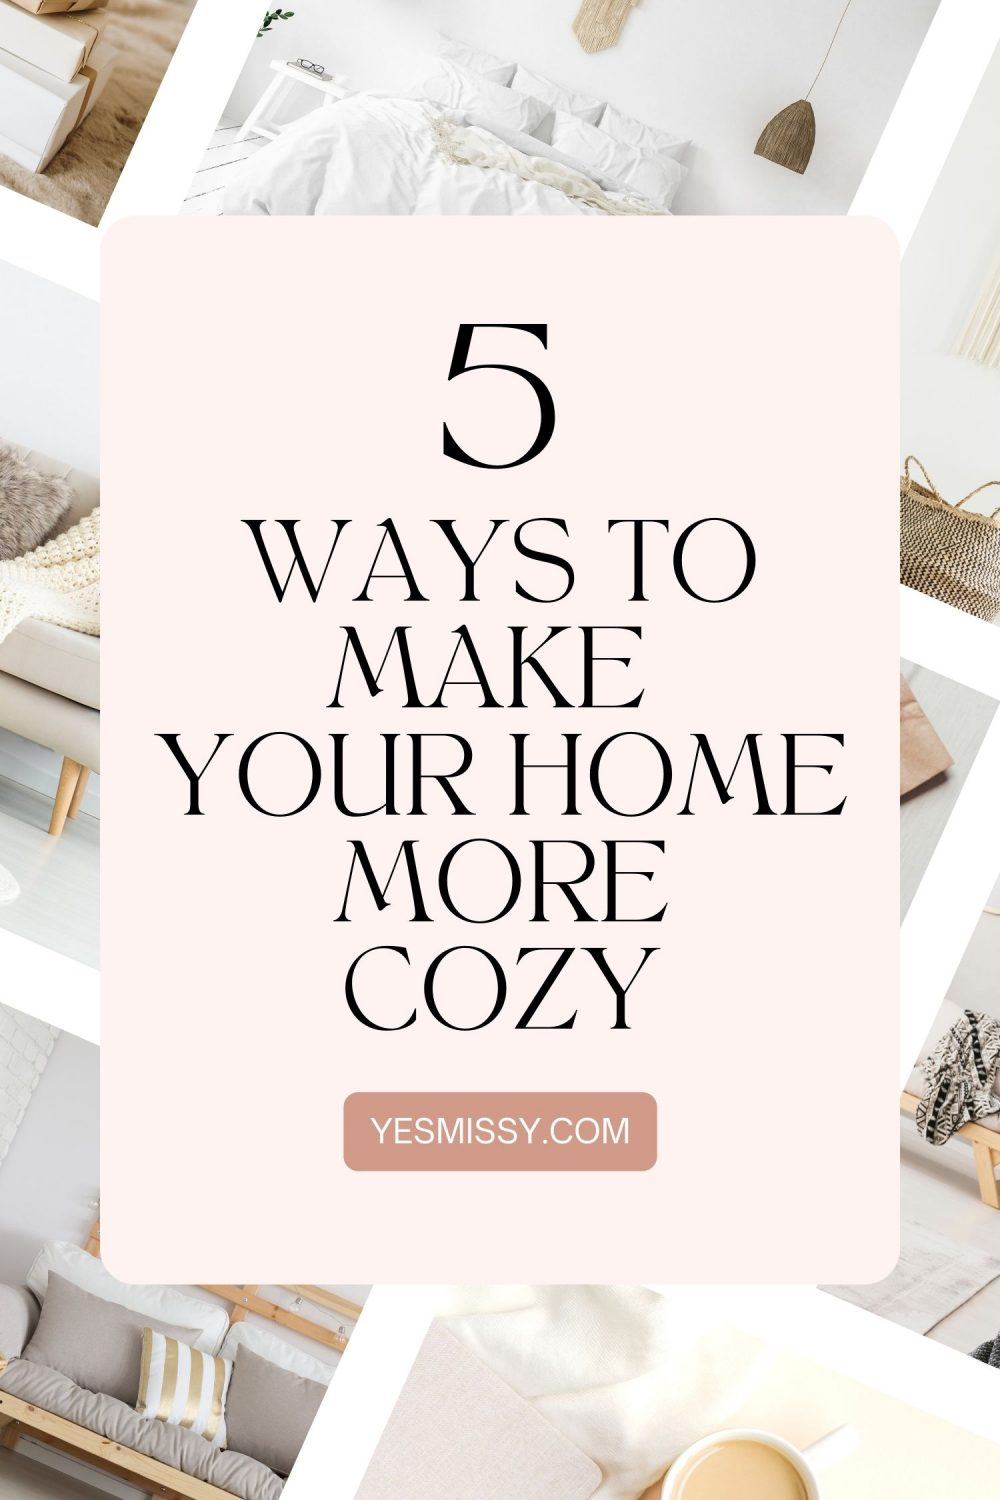 Tips to Create a Warm and Cozy Home: Warm paint color · Incorporate wood · Layered rugs · Textural elements. Get more home decor tips on my lifestyle blog yesmissy.com where you'll find DIY ideas, easy home hacks and decorating inspiration and ideas for fall and winter